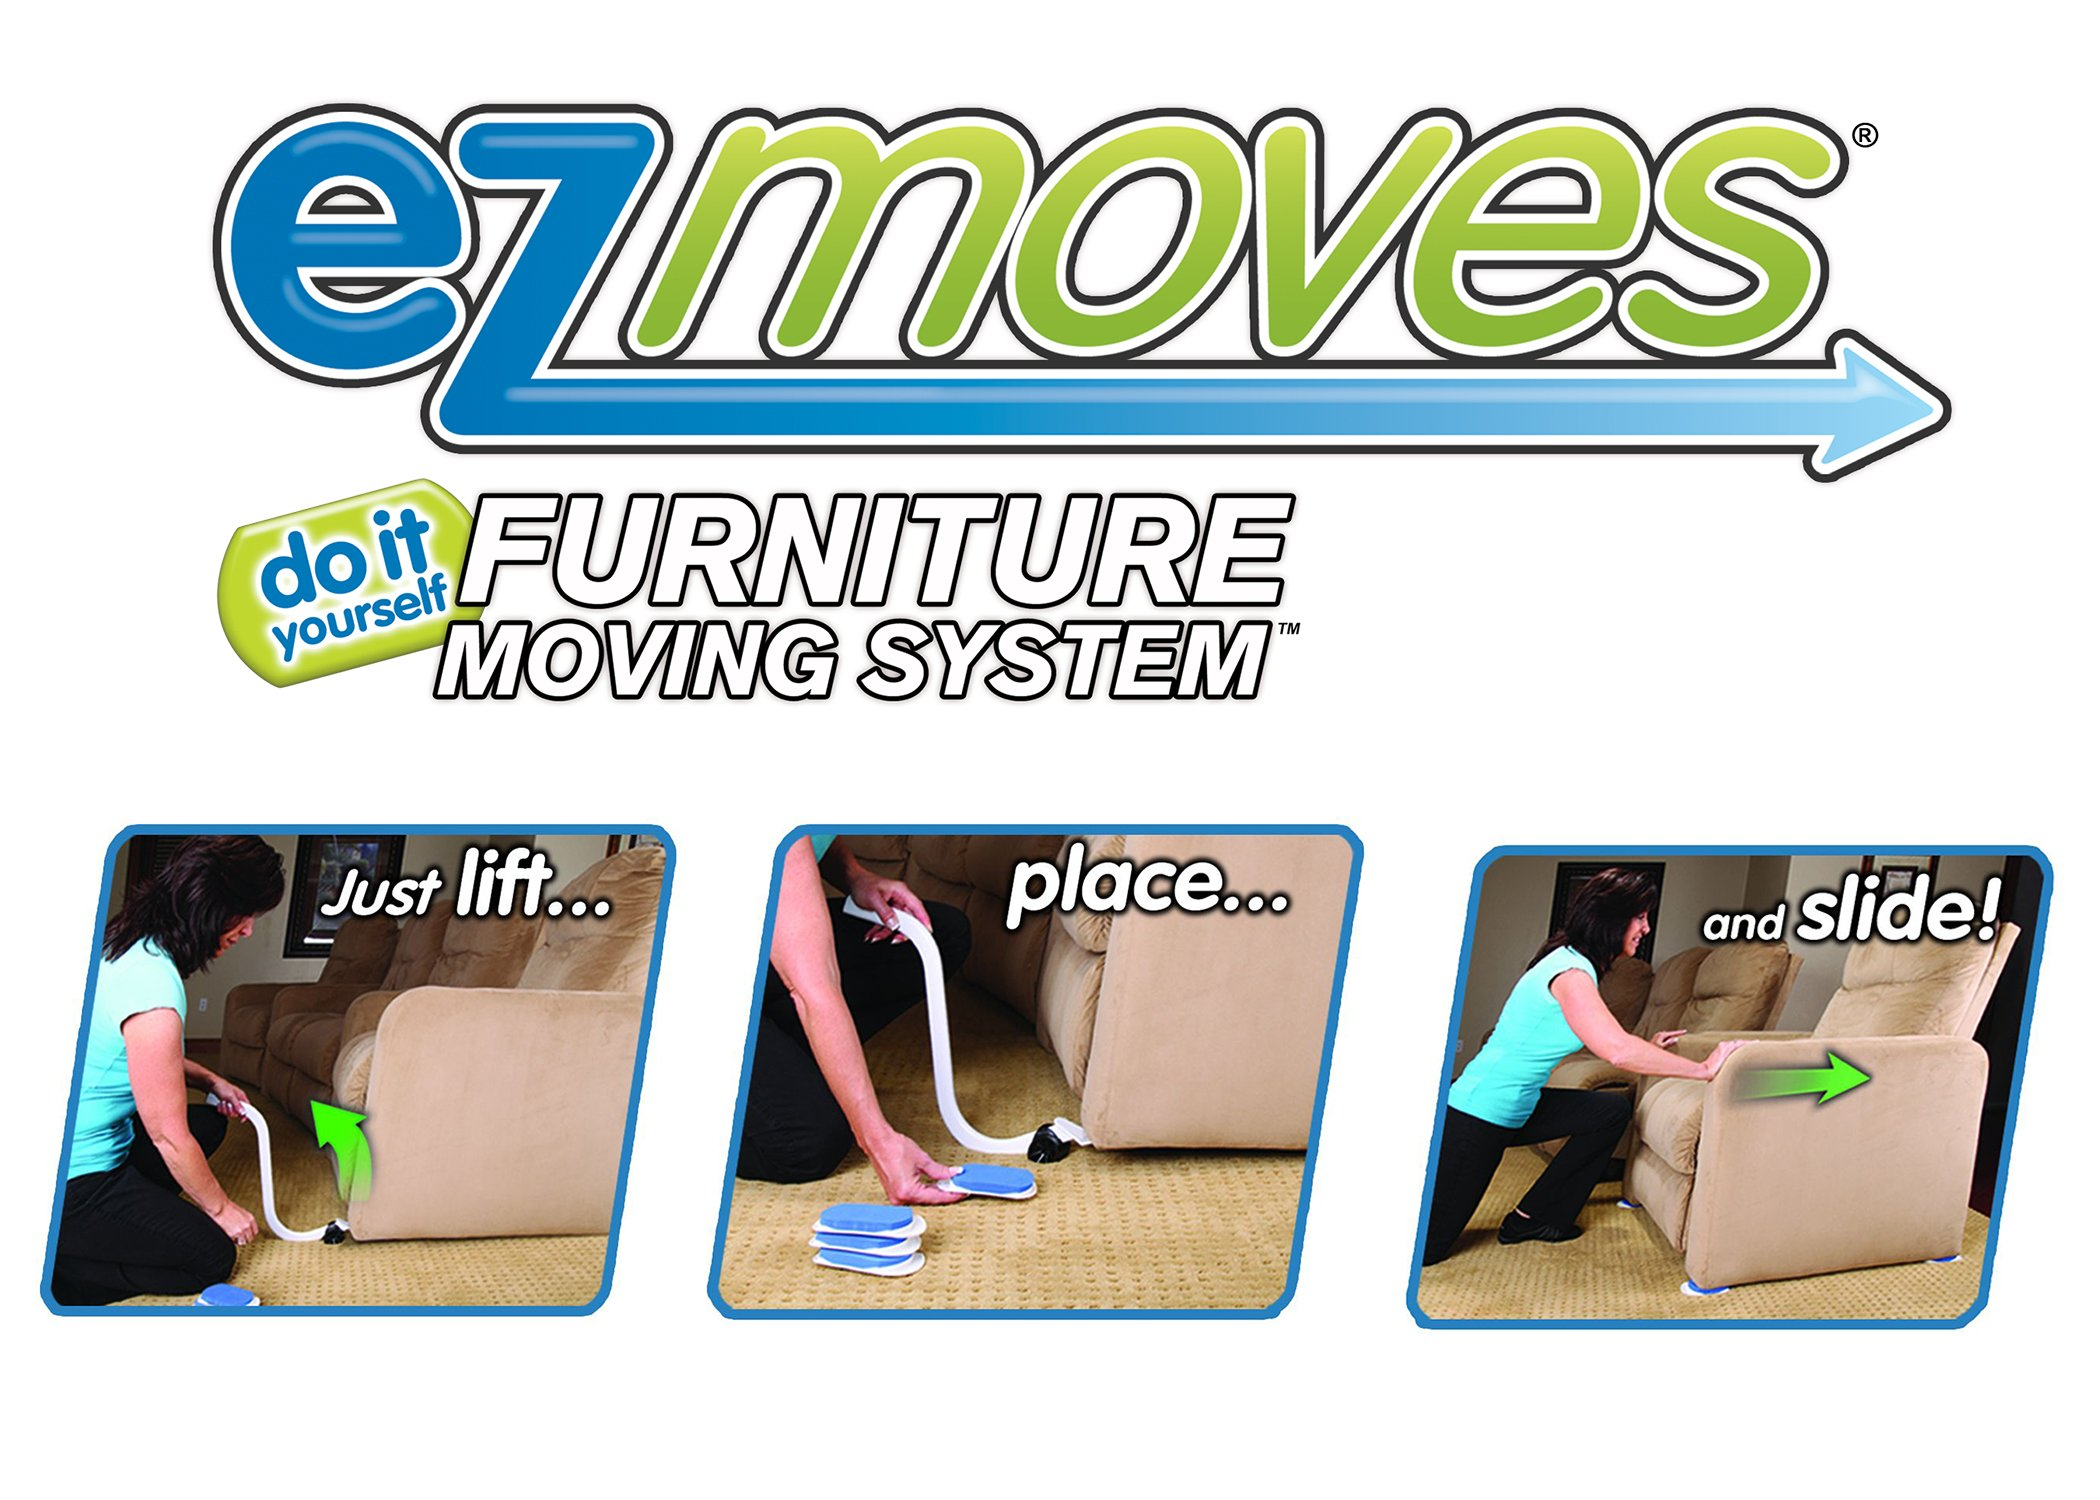 Ez Moves Furniture Moving Pads System 1 Lifter Tool 8 Sliders As Seen On Tv Ebay